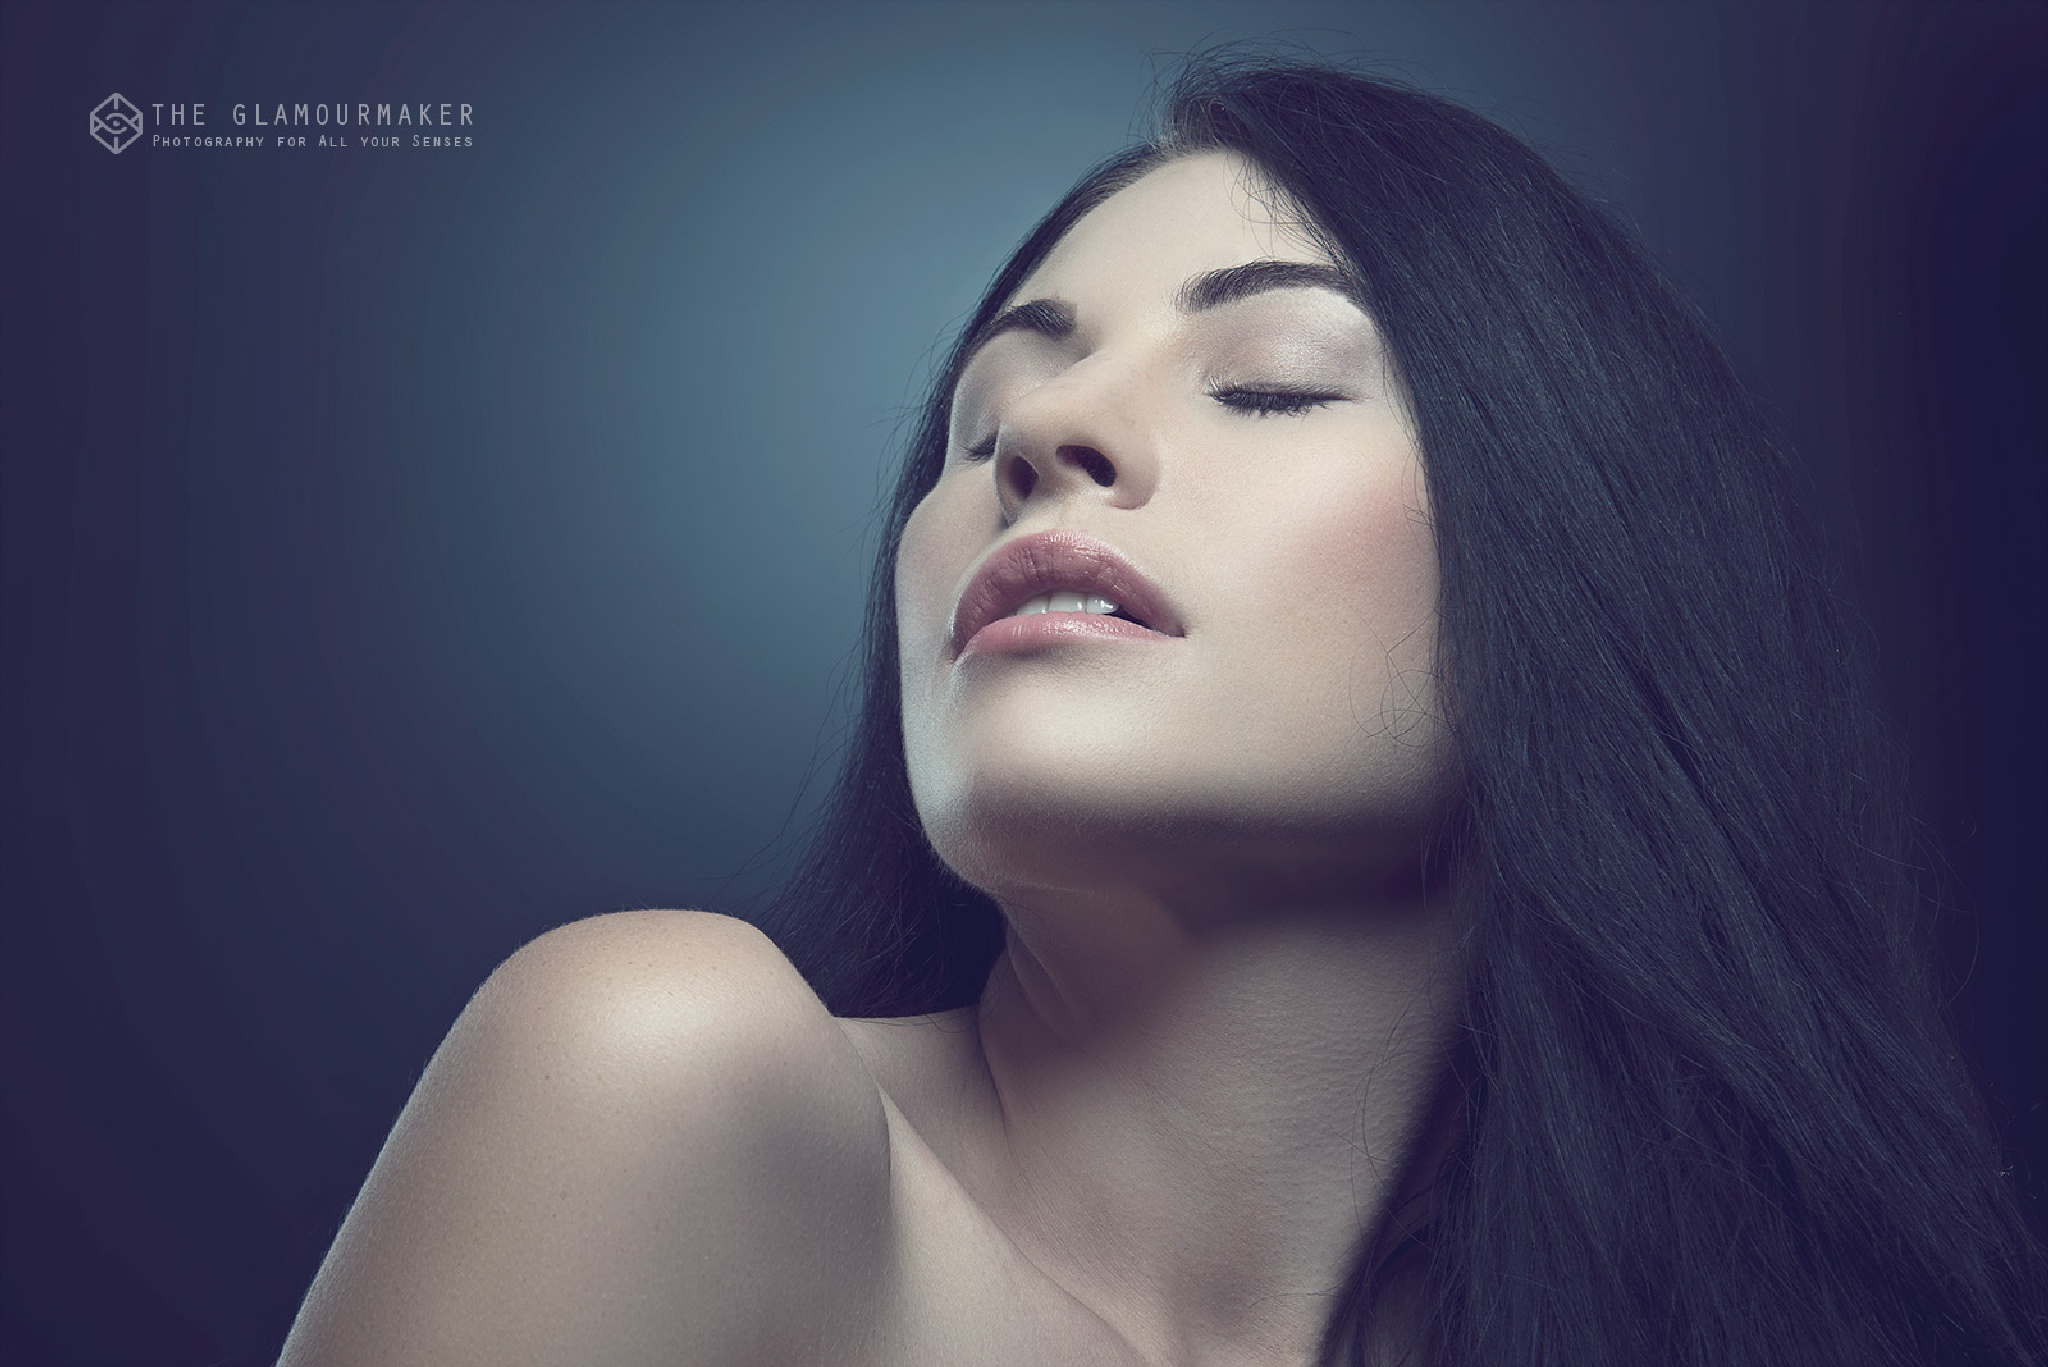 A L M O S T by The GlamourMaker - Photography for All your Senses